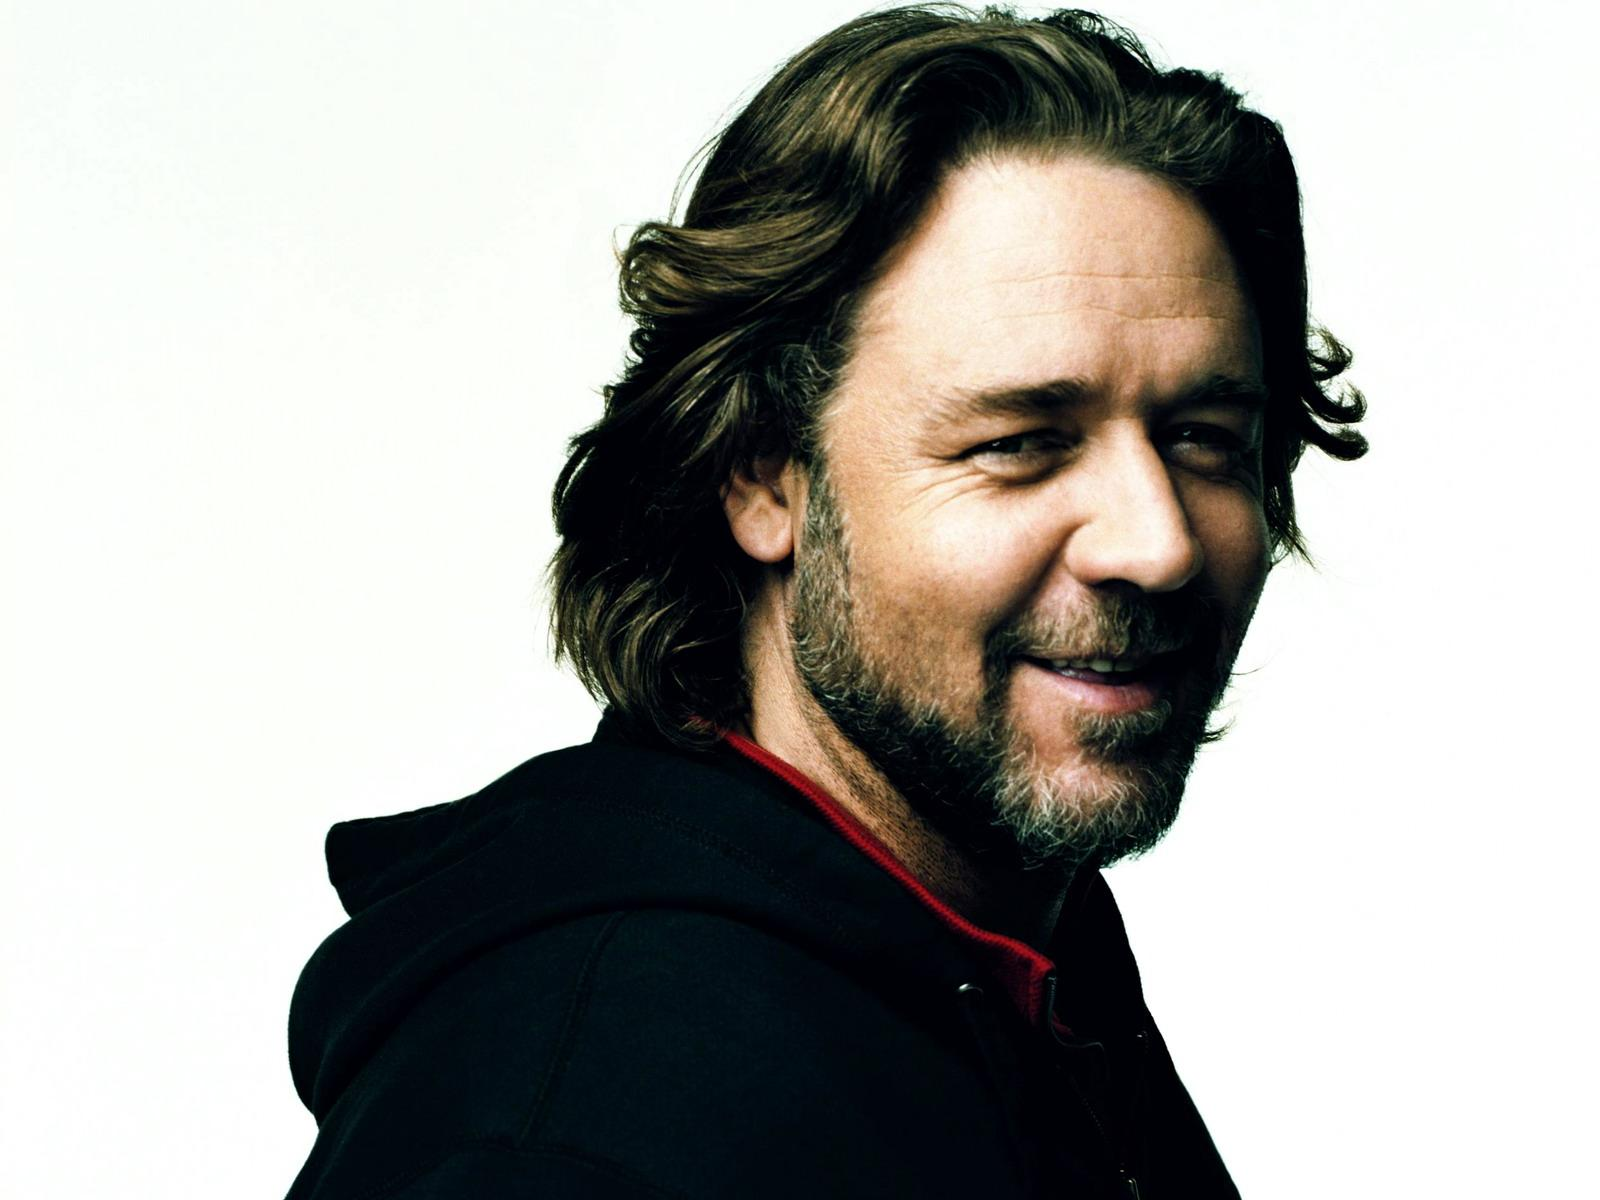 Russell Crowe HD wallpaper 1600x1200